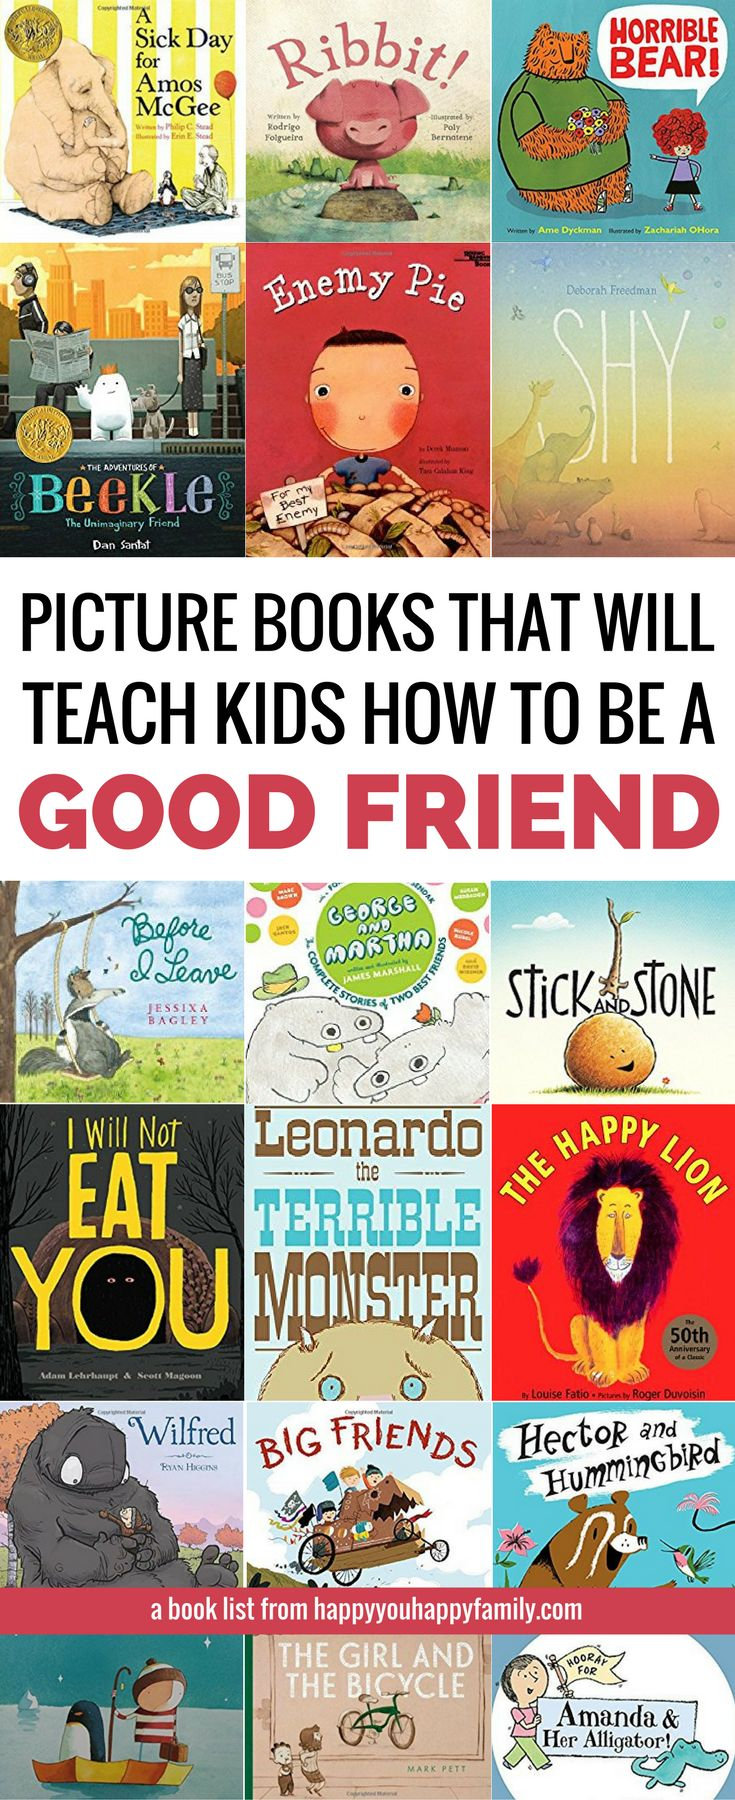 These children's books will teach your kids how to be a good friend and how to deal with friendship problems. Perfect for toddlers, preschoolers, and older kids too. But the BEST part about this list of picture books about friendship? Every book on it is 100% approved by kids *and* parents. #picturebooks #kidsbooks #kidlit